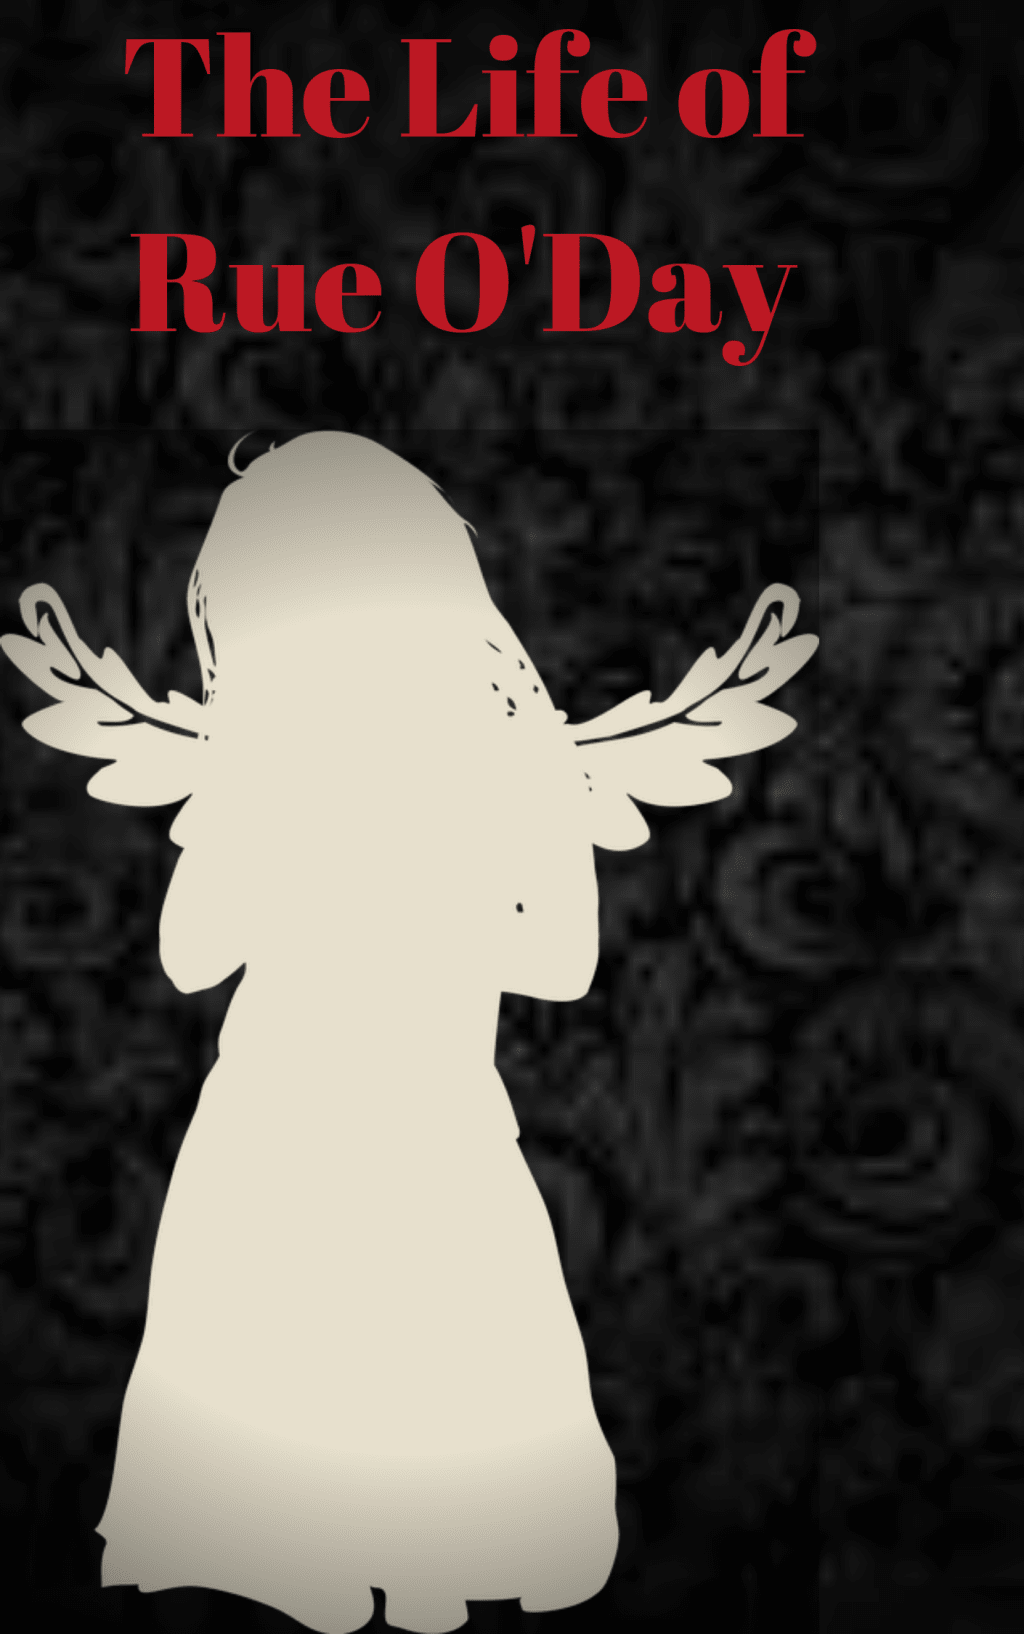 The Life of Rue O'Day